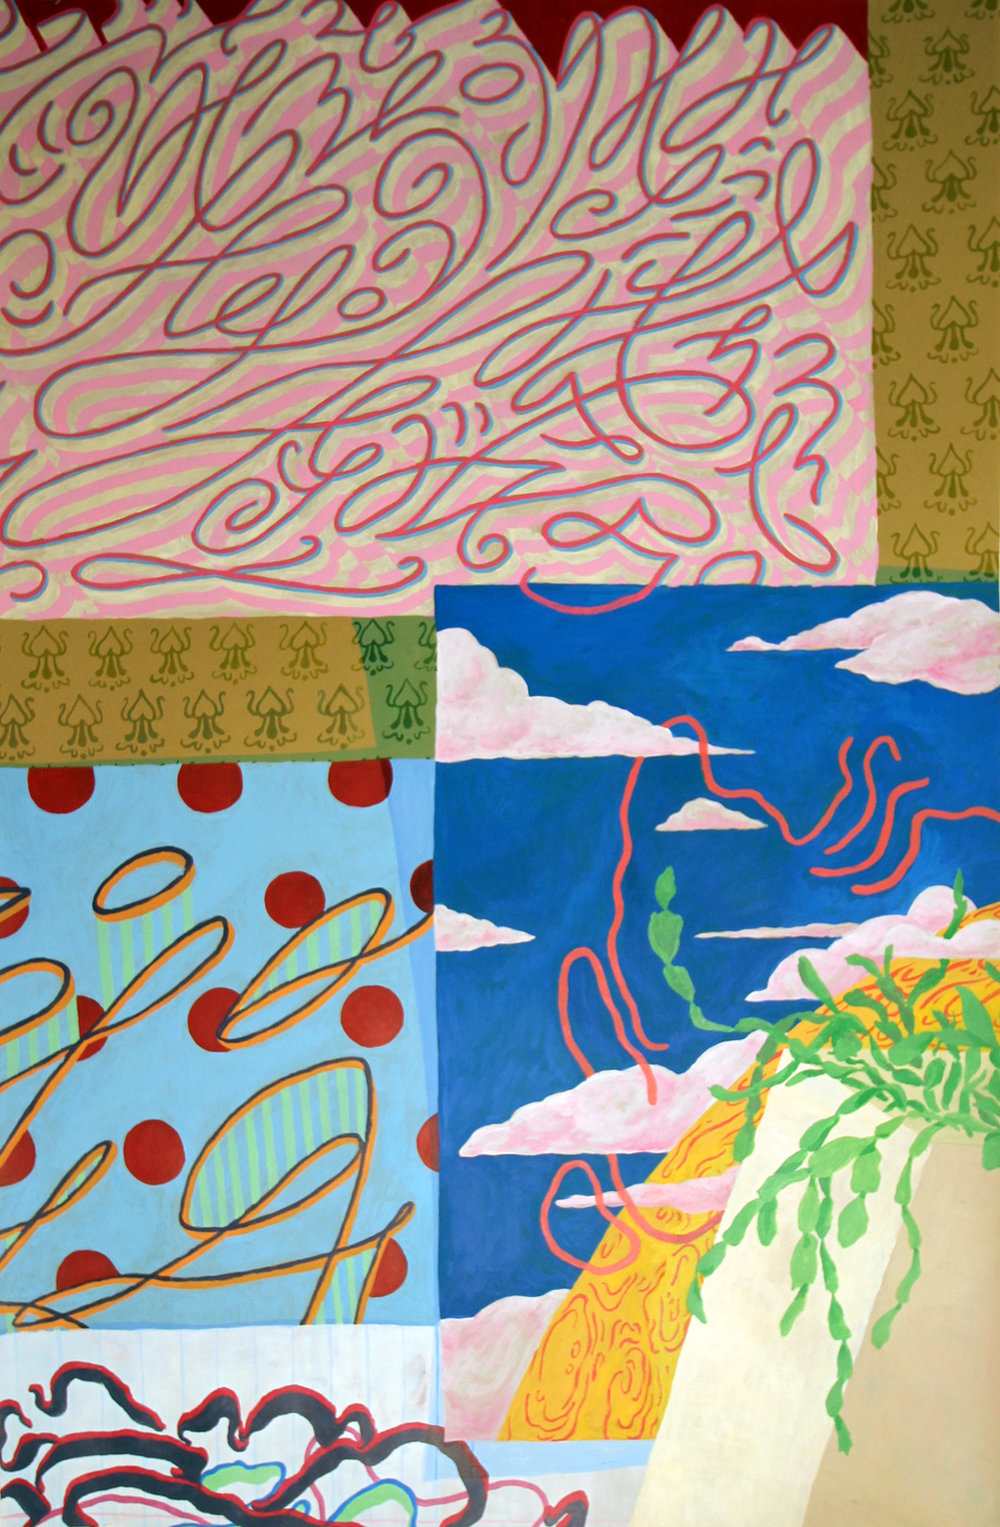 Drawings (2012-2013) & painting (2015) with wallpaper & cactus